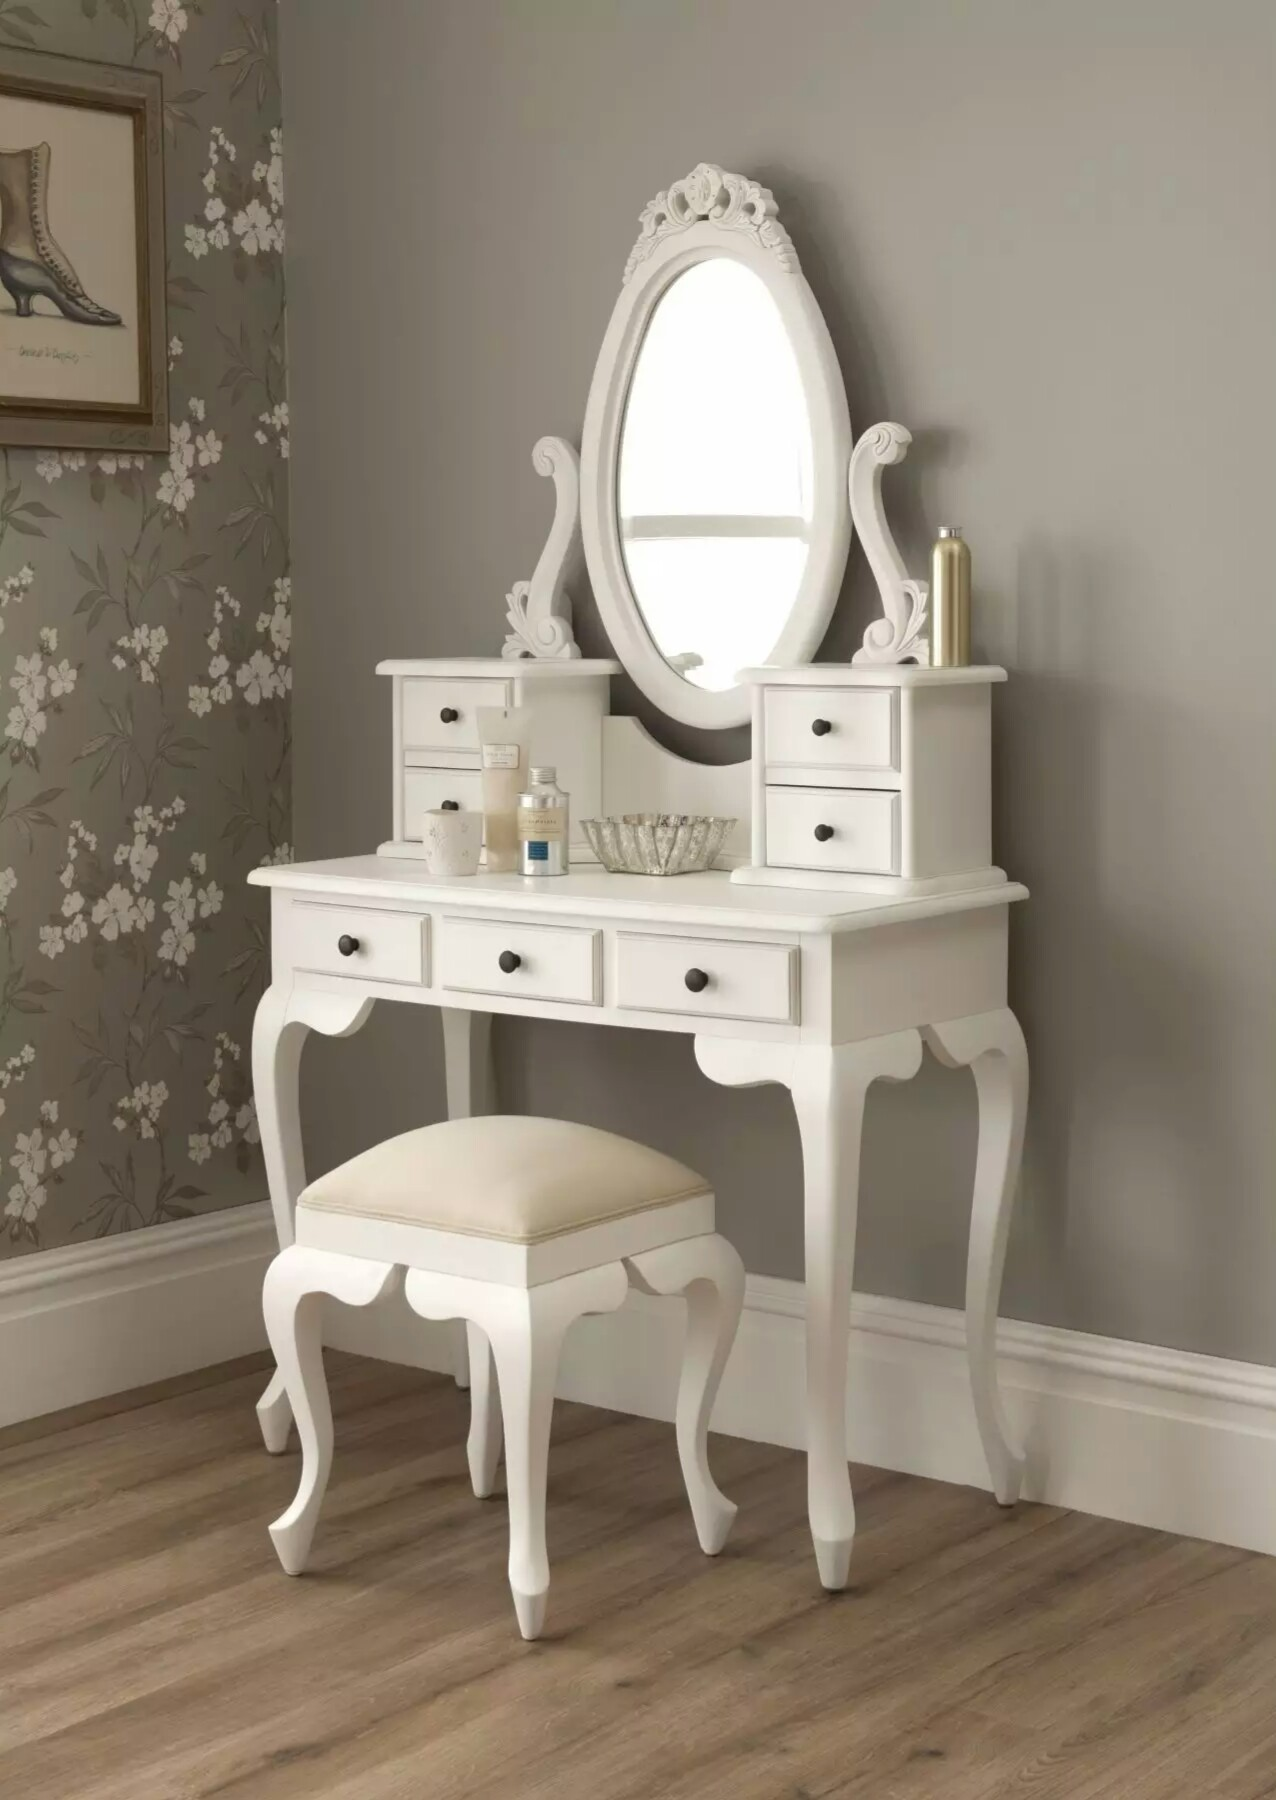 Superb img of interior furniture decoration sweet white wooden dressing table  with #284B5C color and 1276x1800 pixels